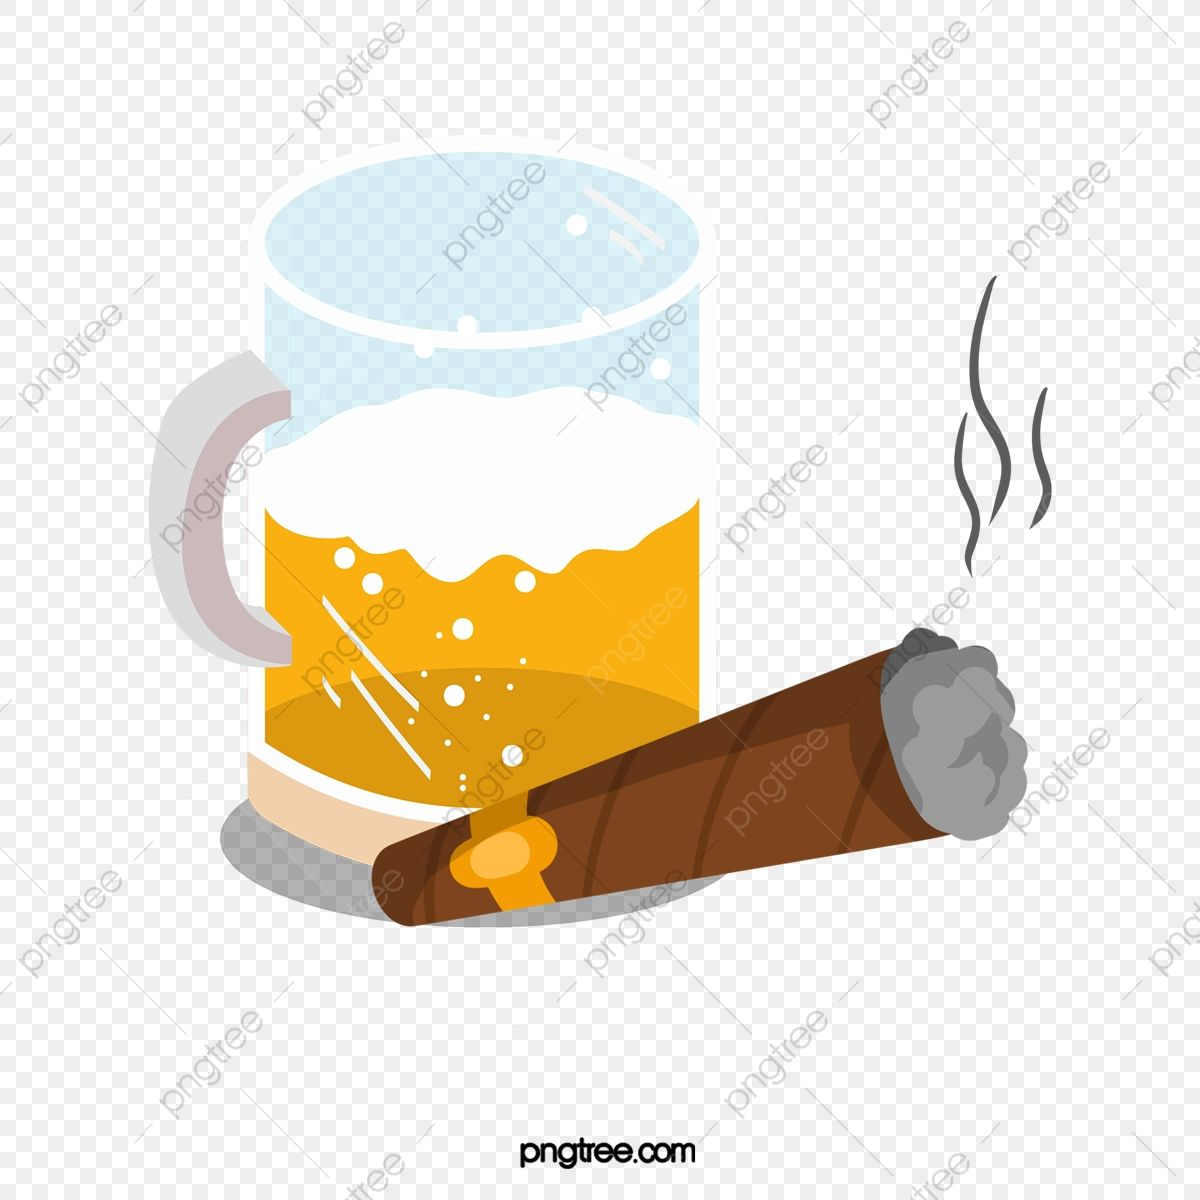 Cartoon Cigar Cartoon Clipart Smokes Wine Png Transparent Clipart Image And Psd File For Free Download Cartoon Clip Art Clip Art Clipart Images